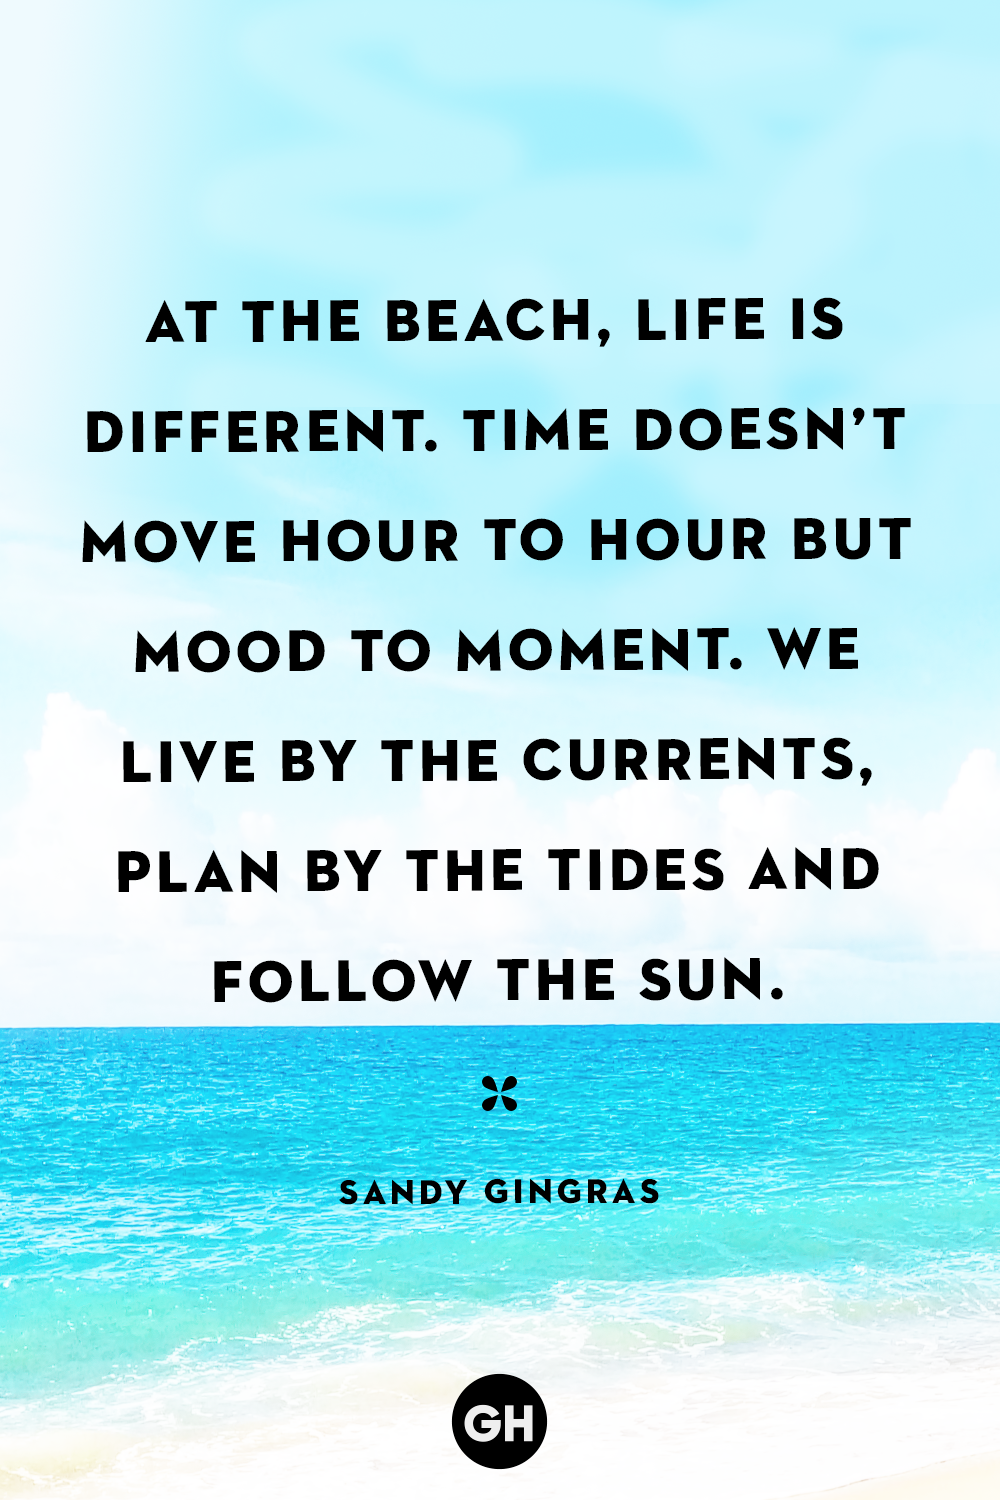 4 Best Beach Quotes - Sayings and Quotes About the Beach